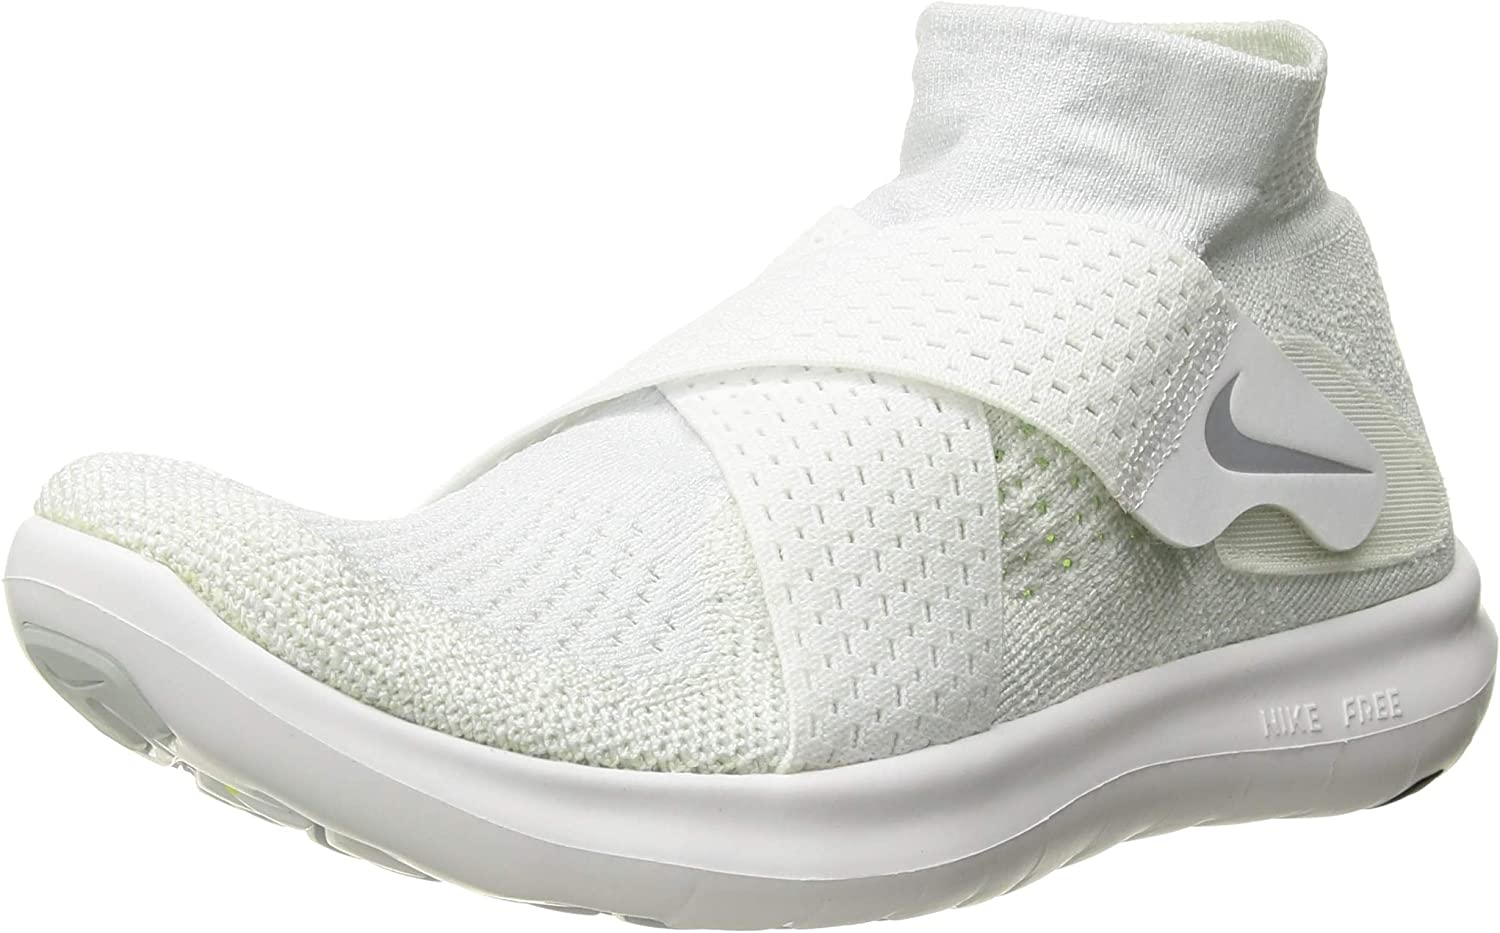 Nike Womens Free sale Rn Motion Fk 2017 High order Shoes Walking Top Pull On Low